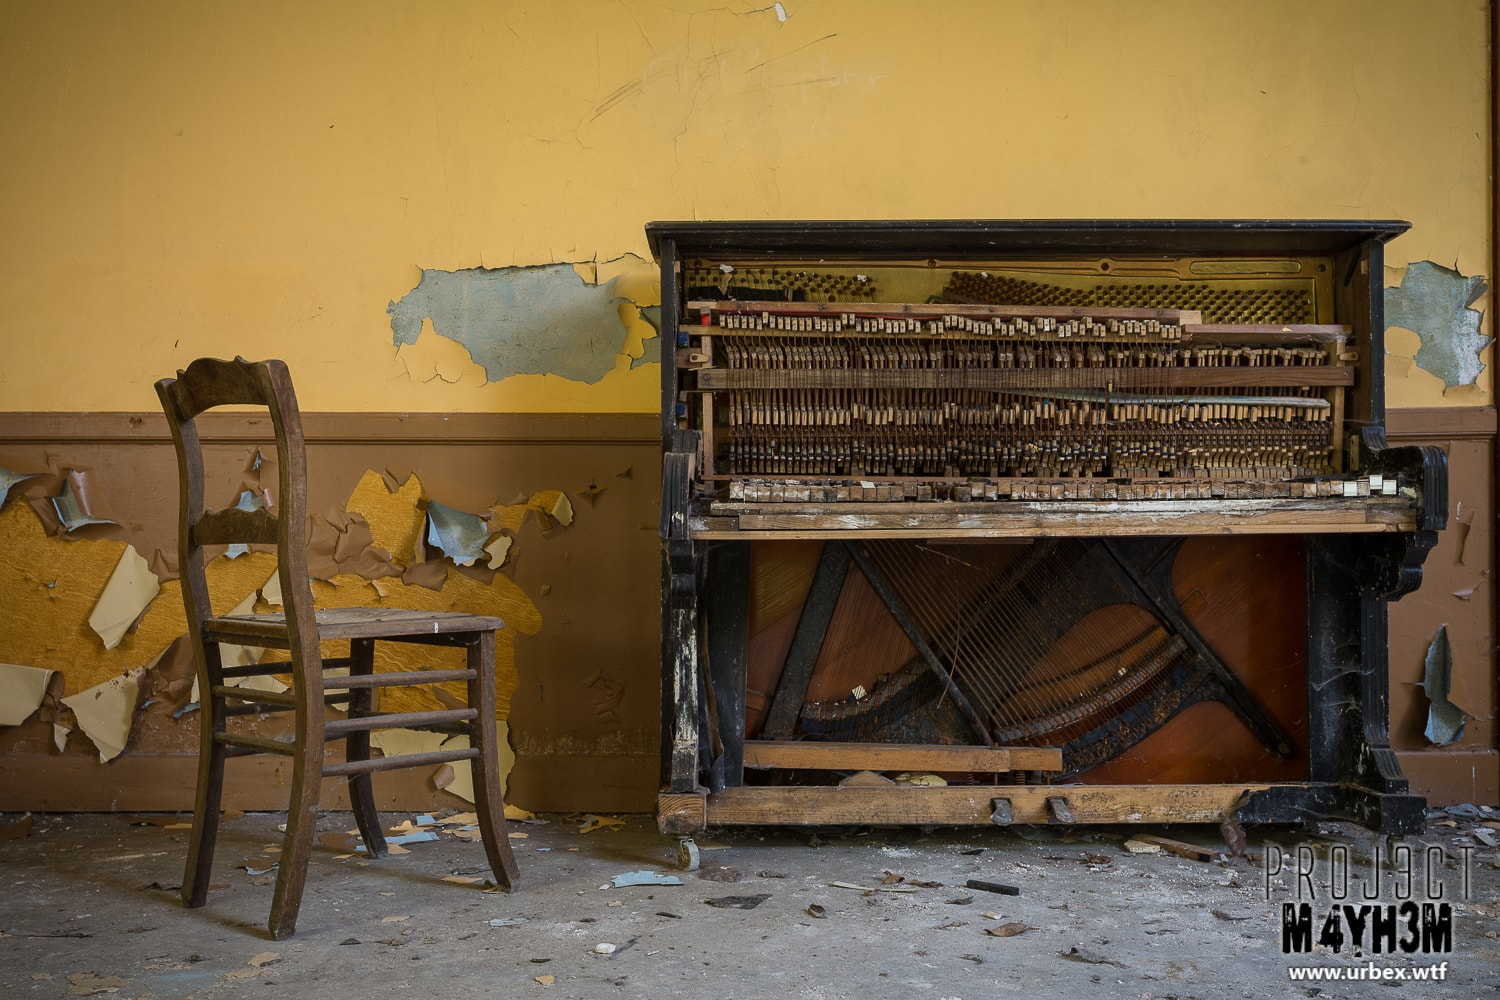 11. Unidentified upright Piano